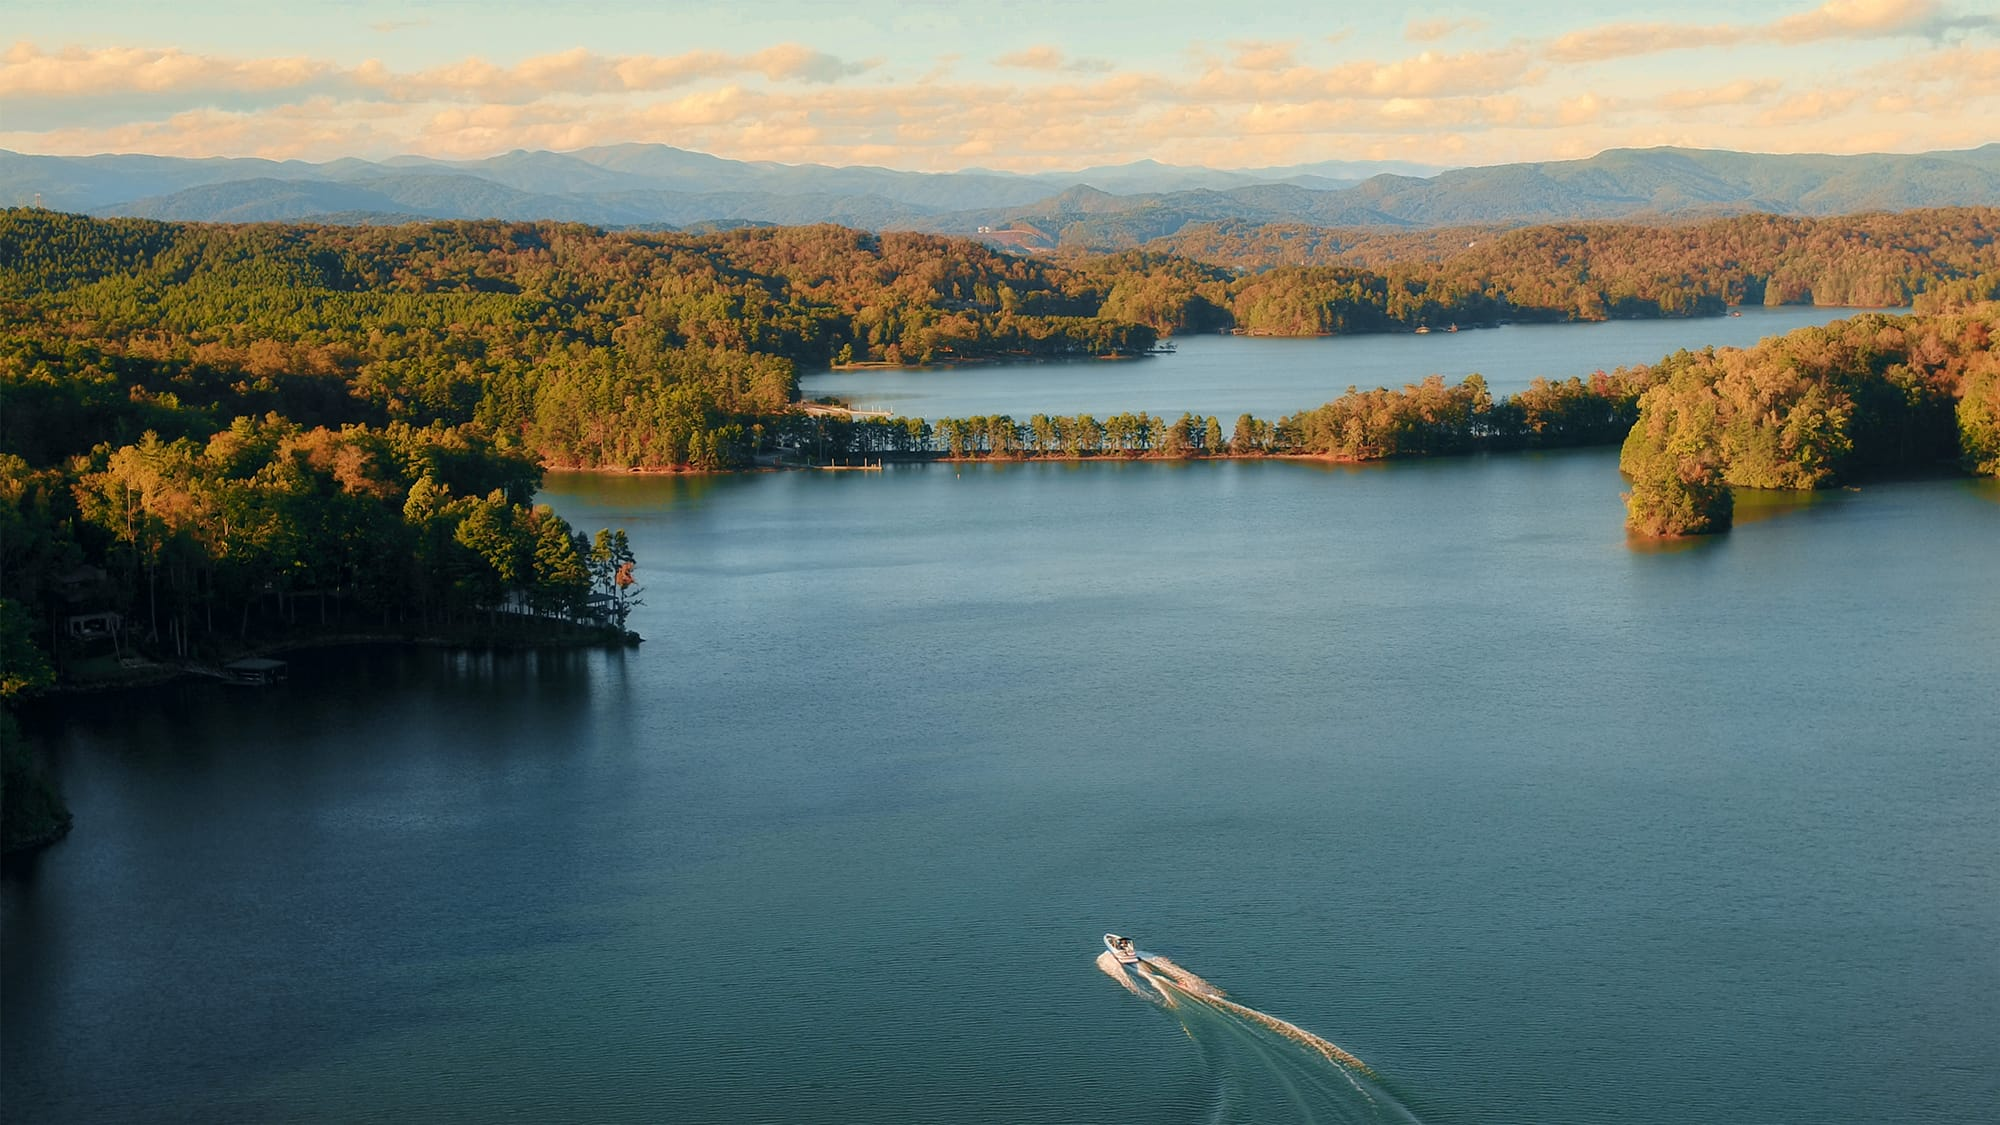 Aerial view of Lake Keowee